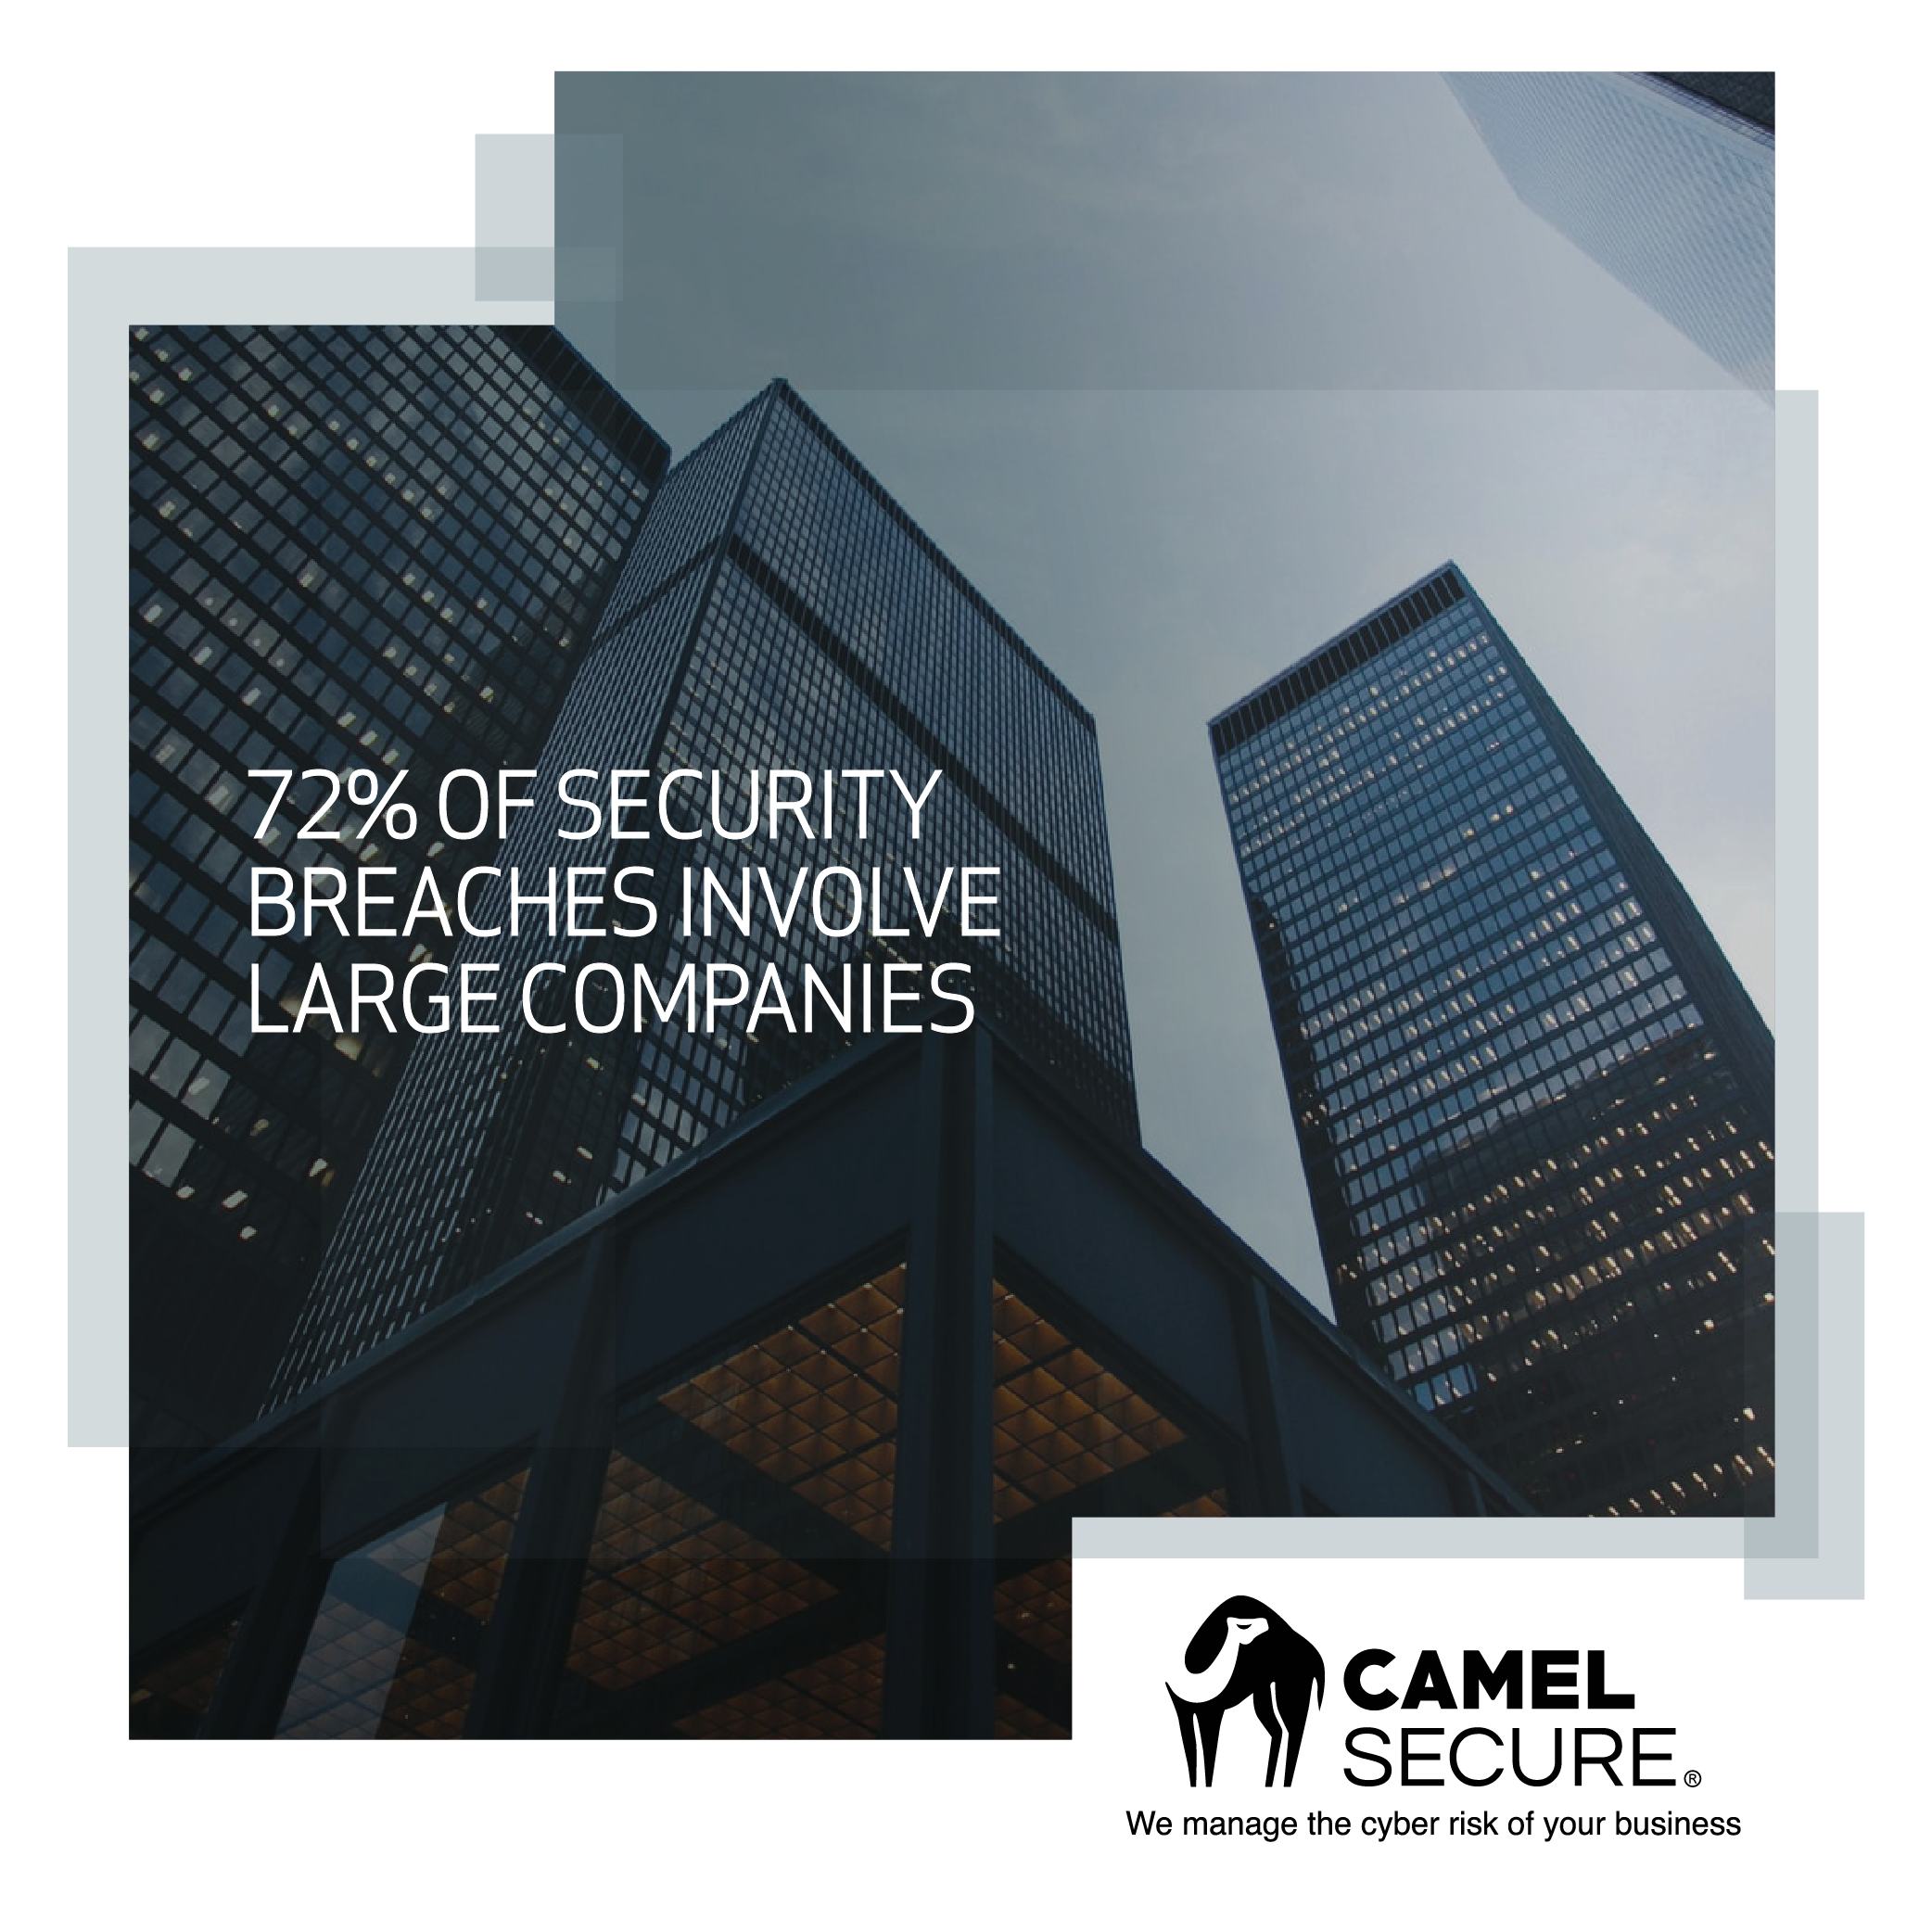 72% of security breaches involve large companies